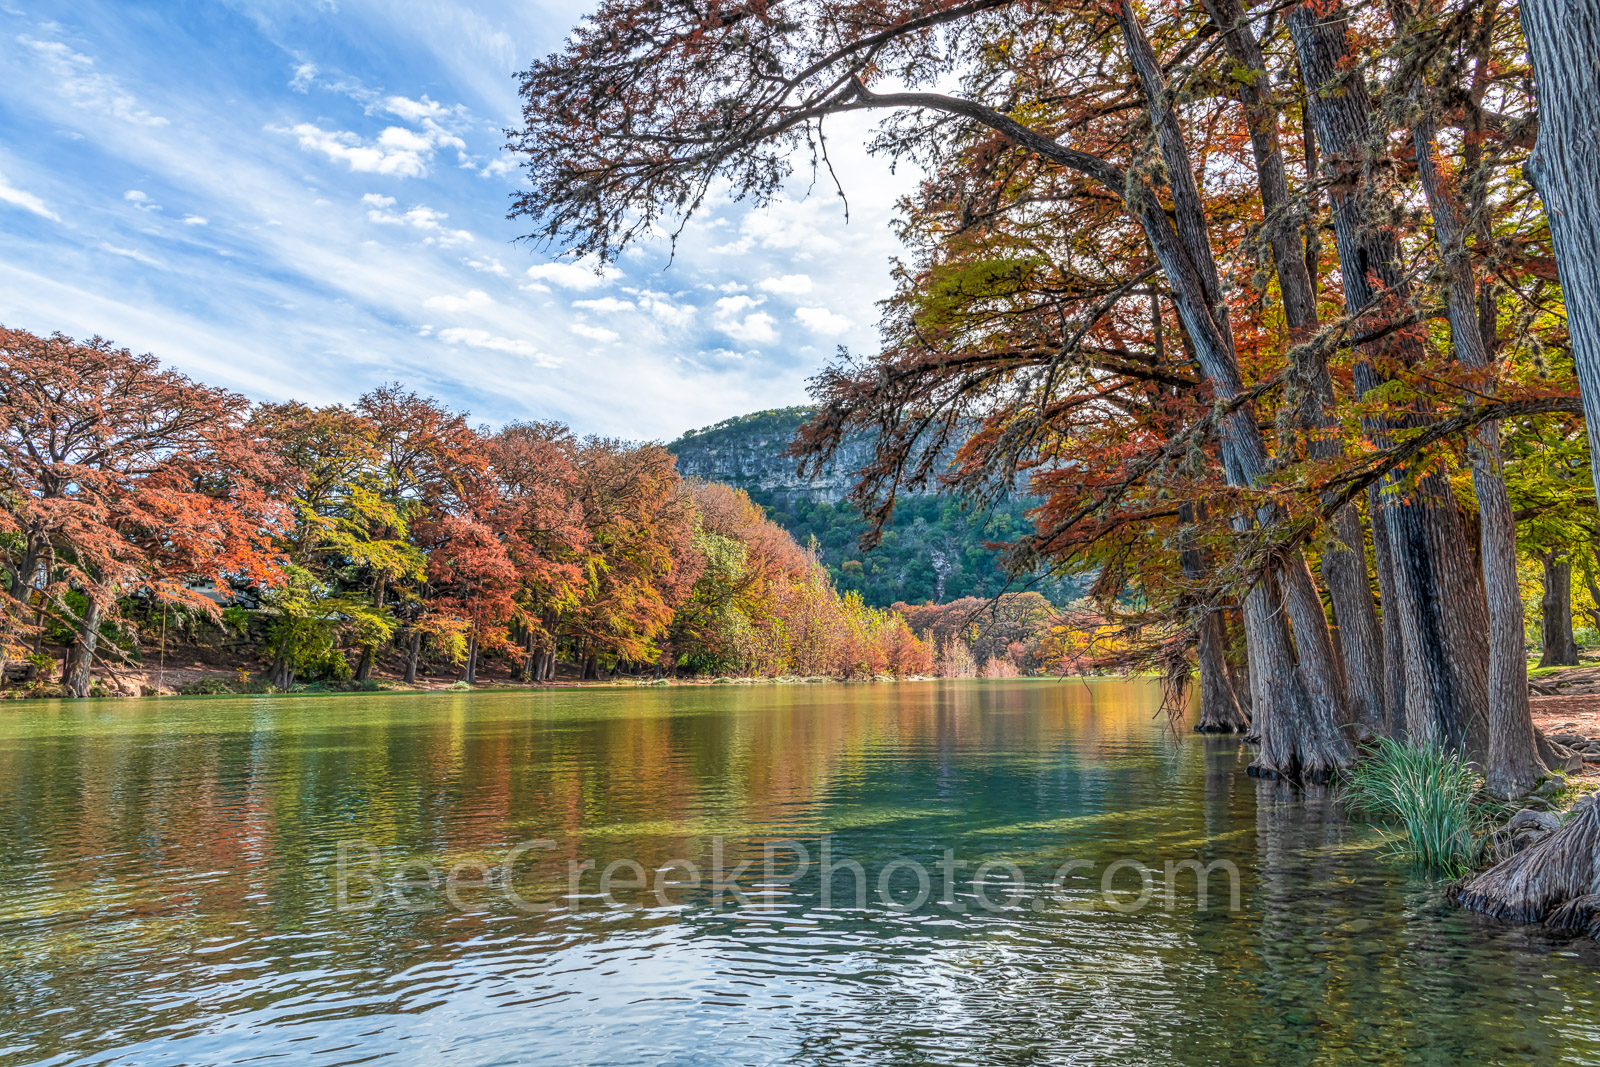 Garner State Park, Frio river, autumn, foliage, Texas landscape, texas hill country, fall, fall colors, Old Baldy, canvas, prints, Texas, landscape,  fall landscape, texas fall landscape, rural texas , photo